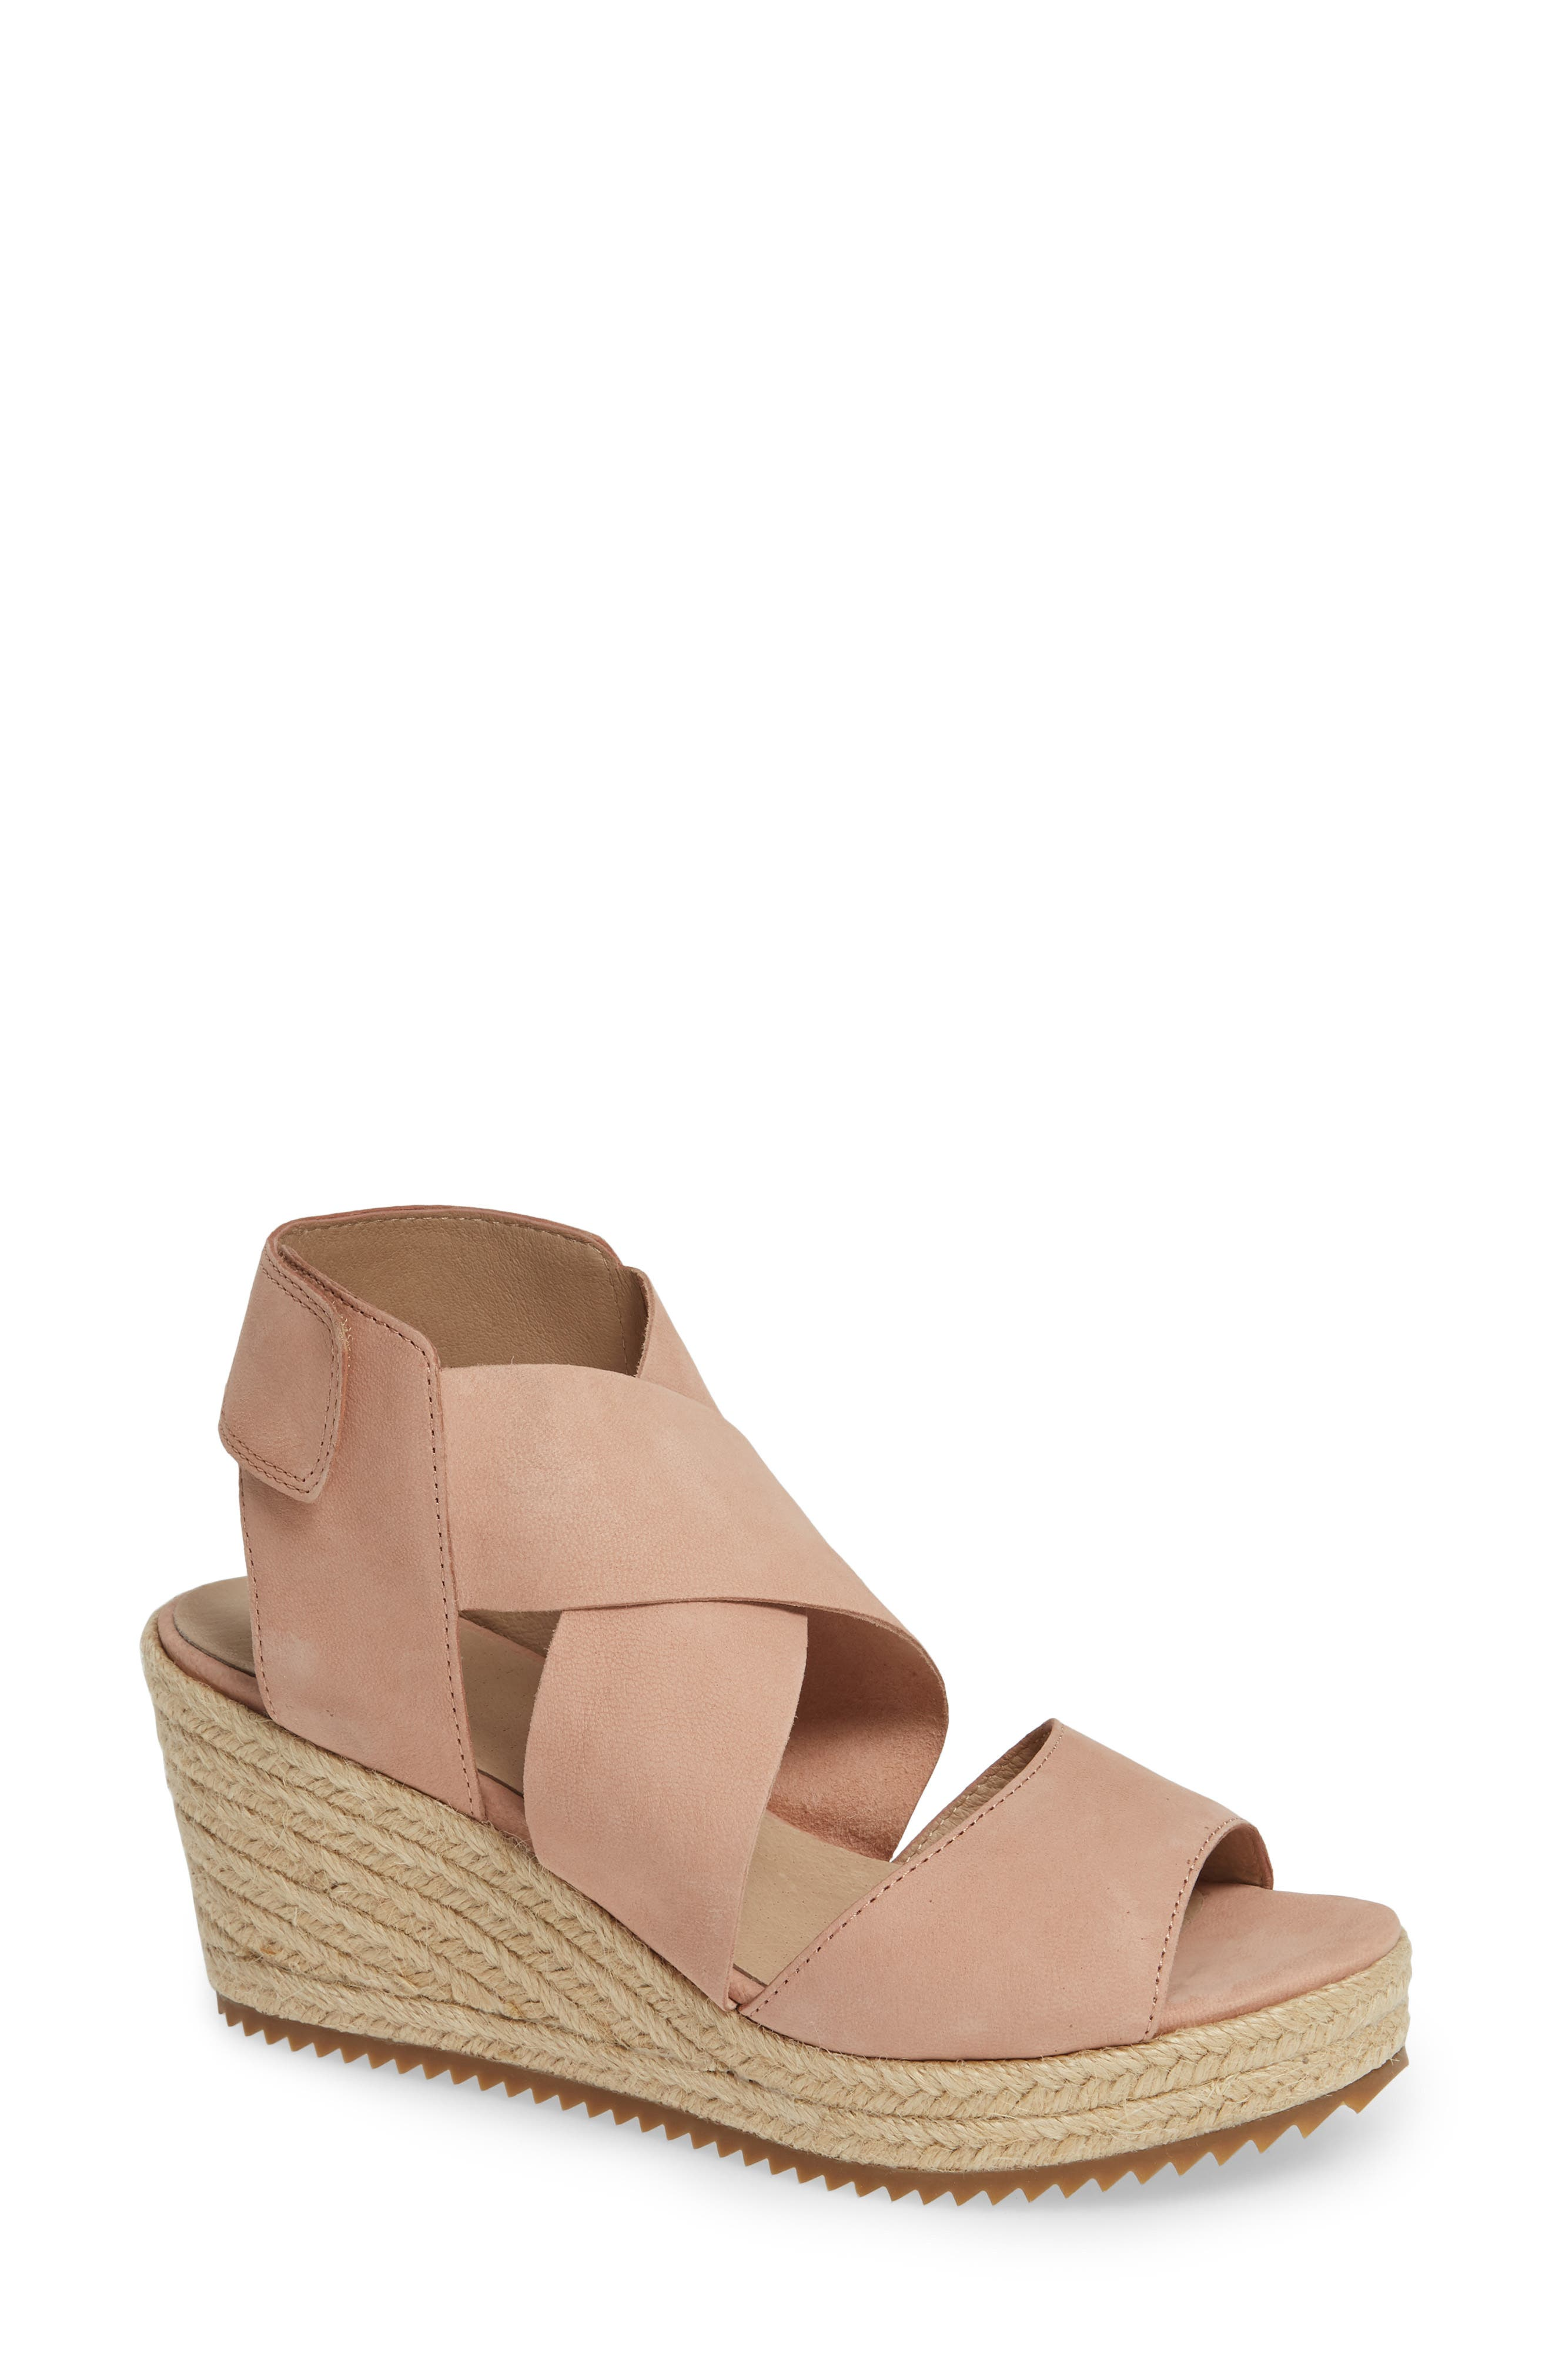 'Willow' Espadrille Wedge Sandal,                         Main,                         color, TOFFEE CREAM NUBUCK